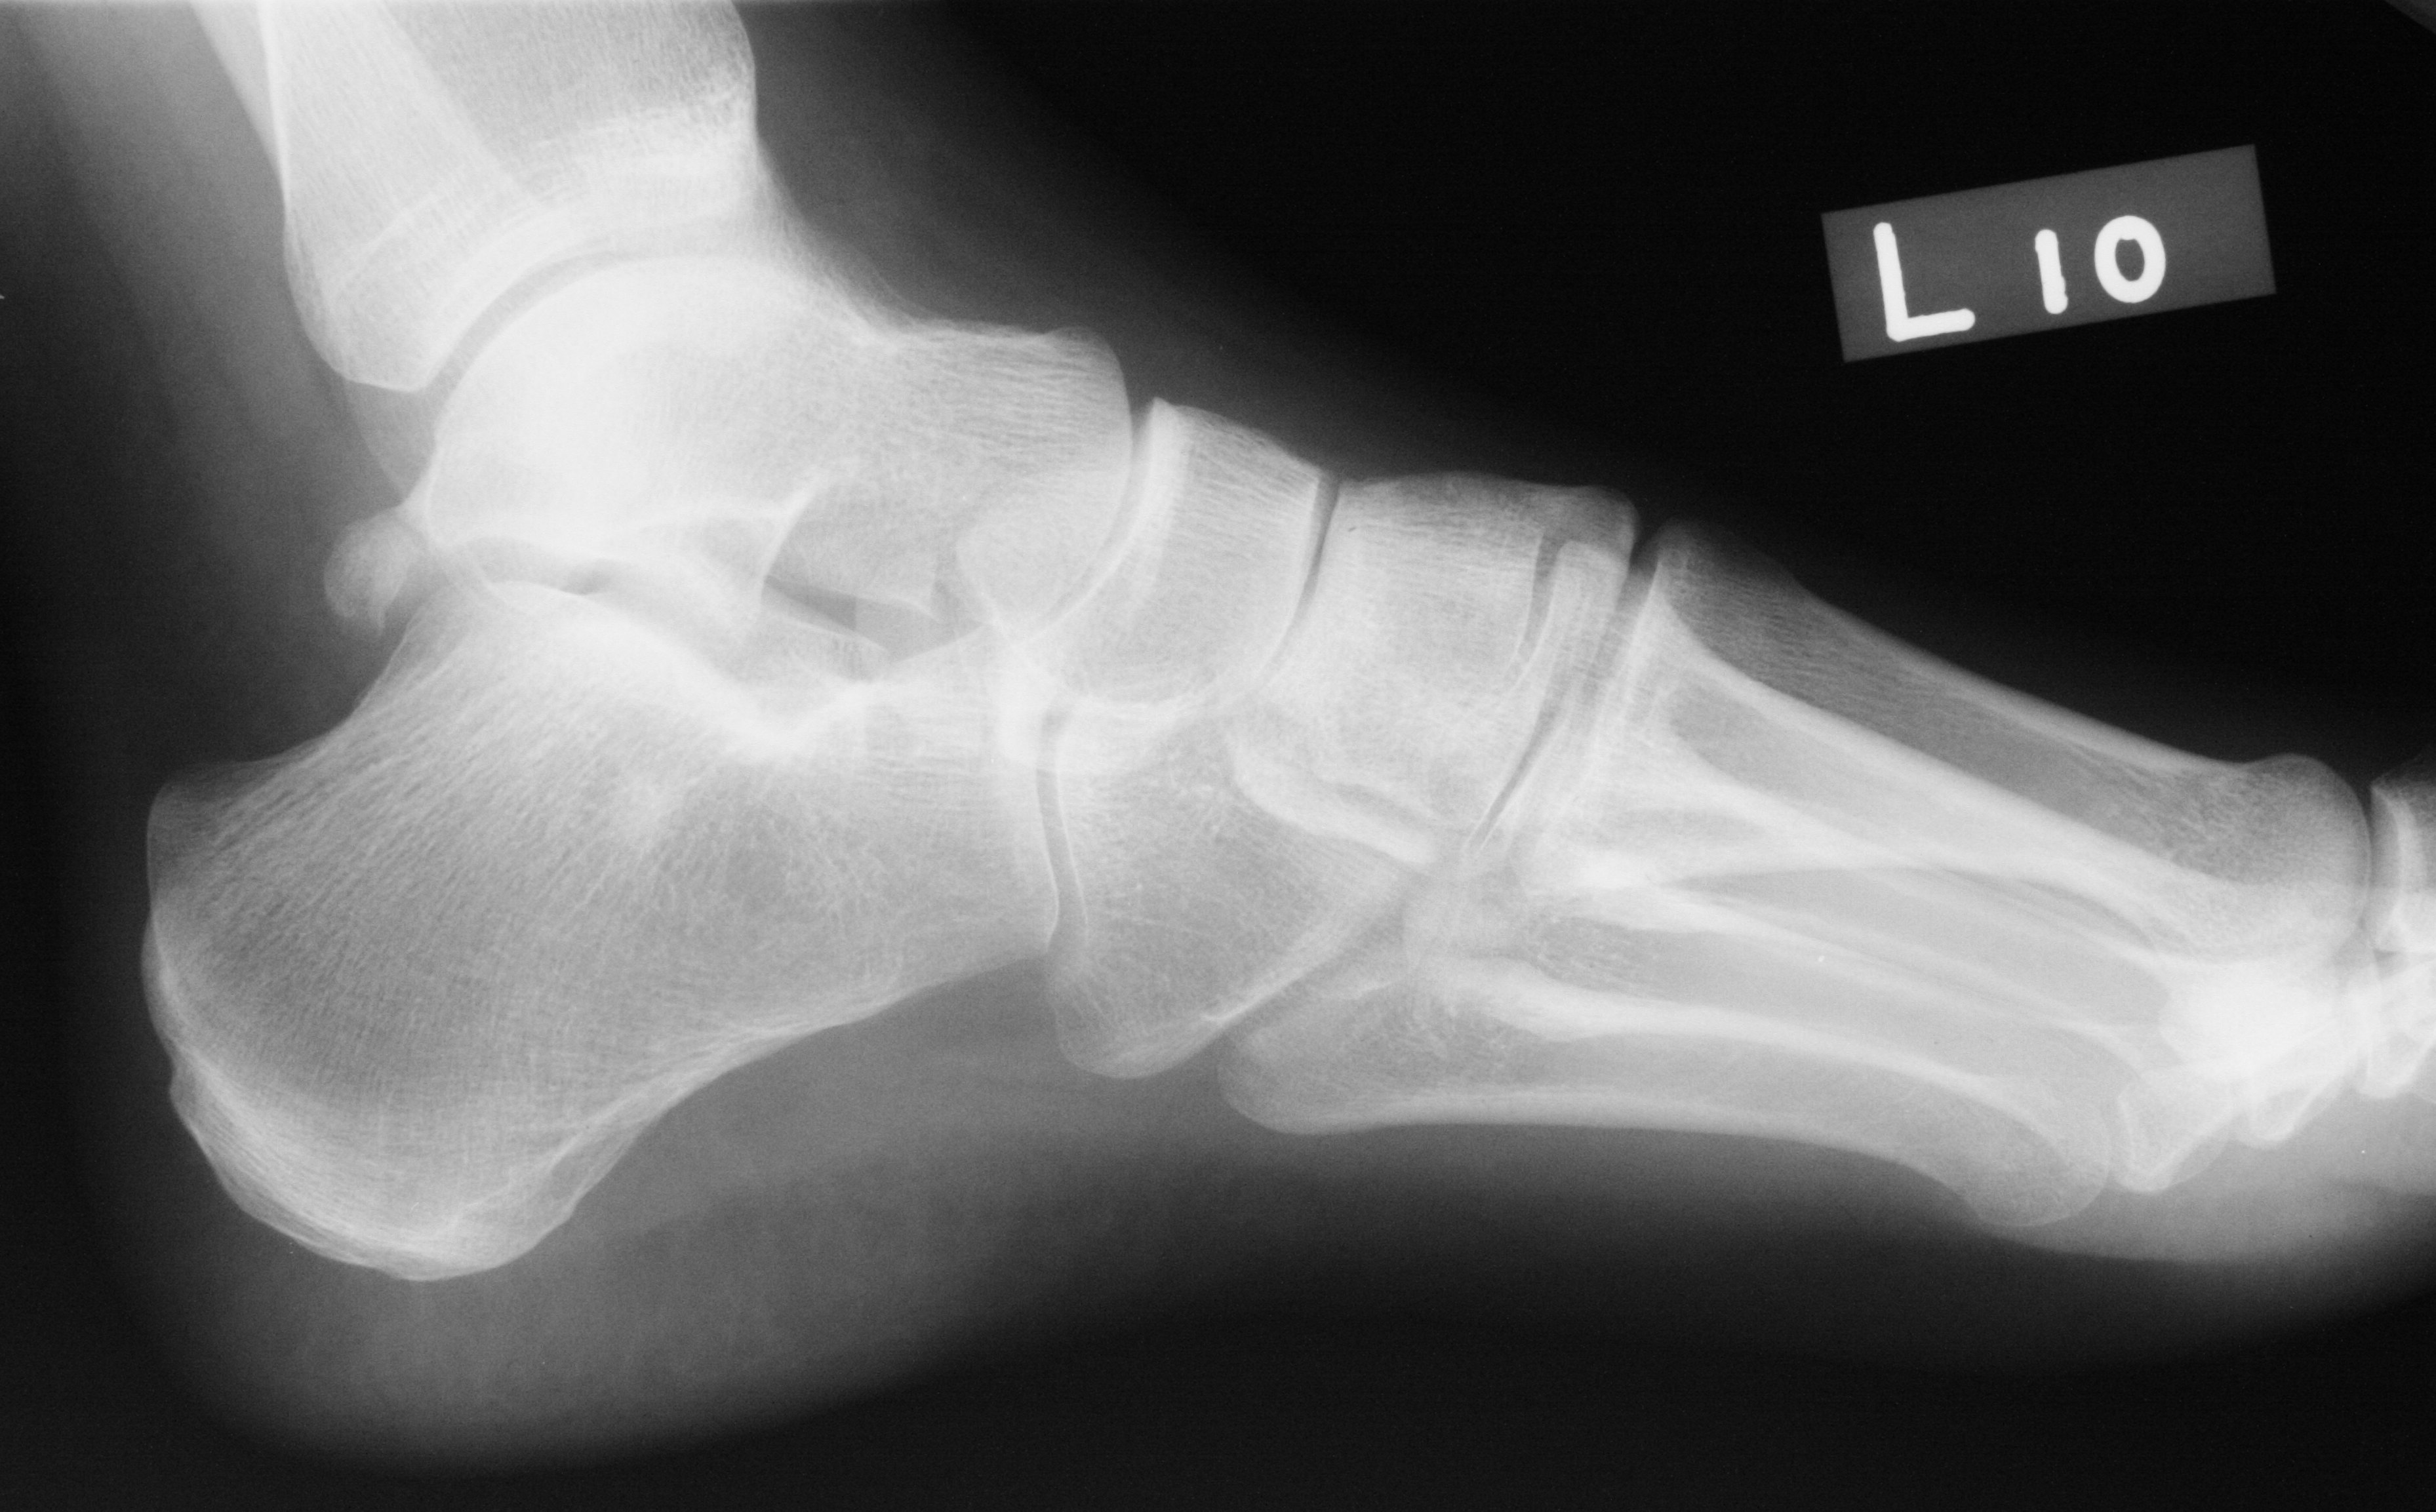 Accessory Navicular